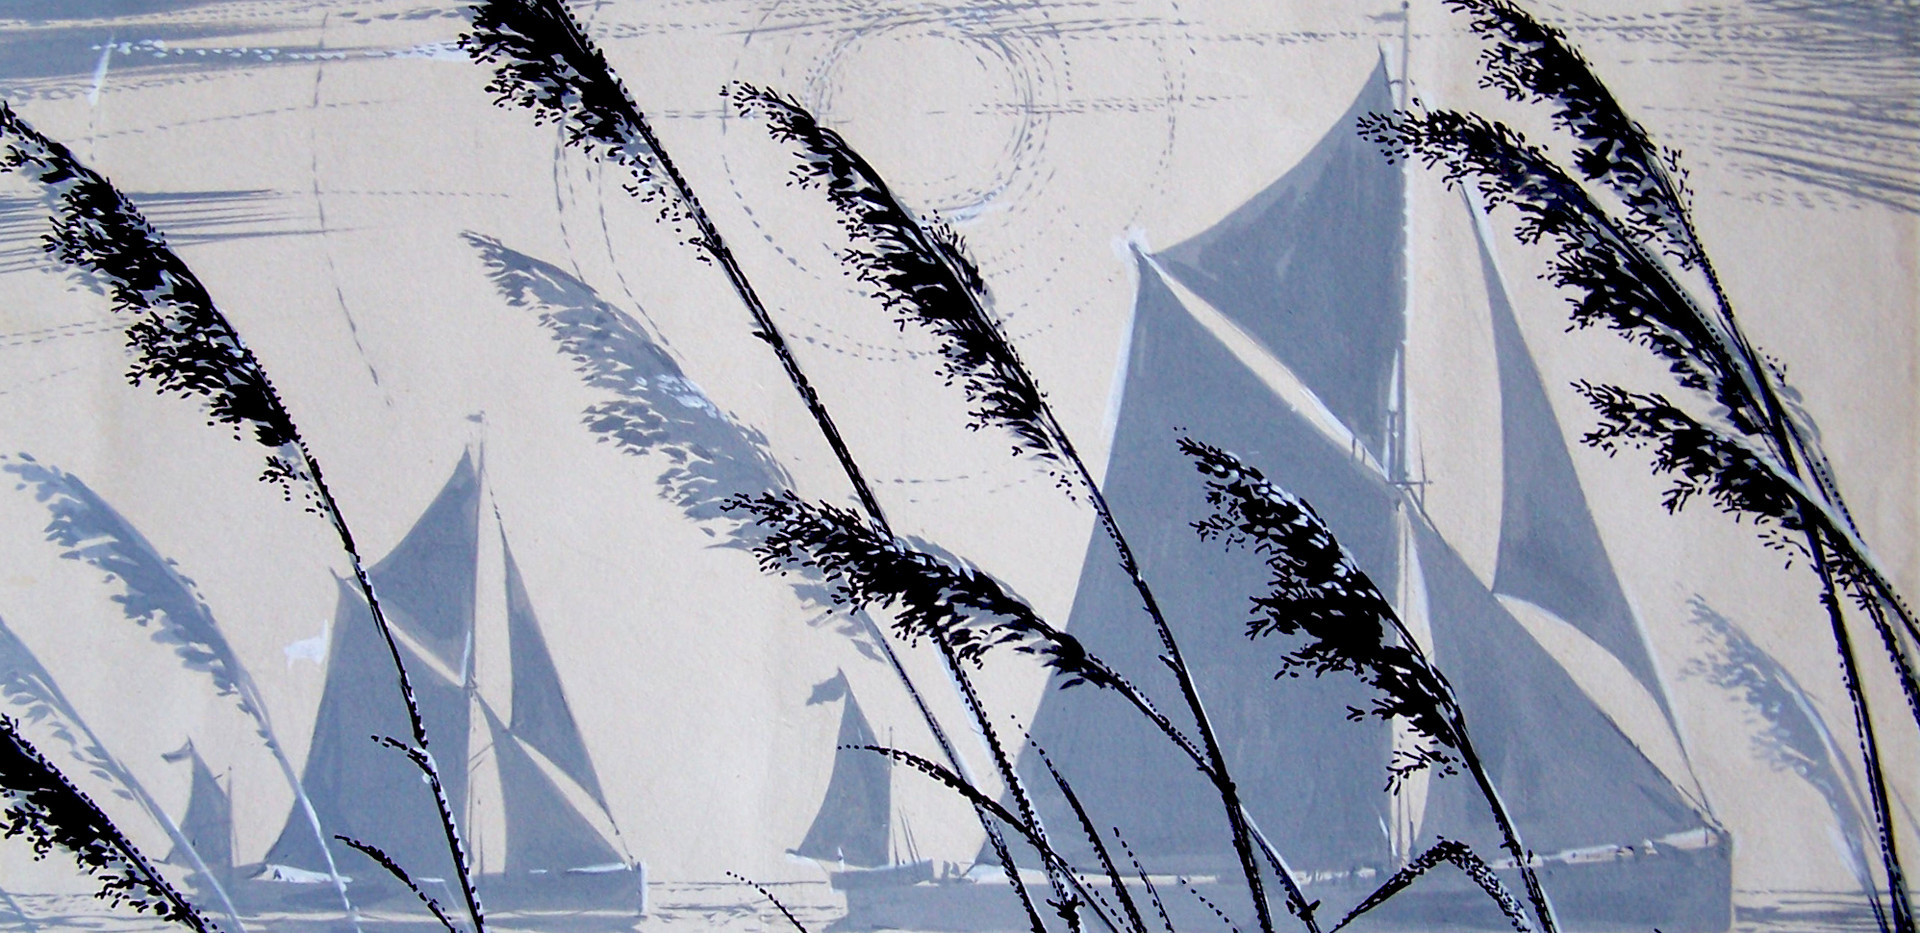 Pin MIll, Sailing Barges by Cavendish Moreton, 1960's mixed media